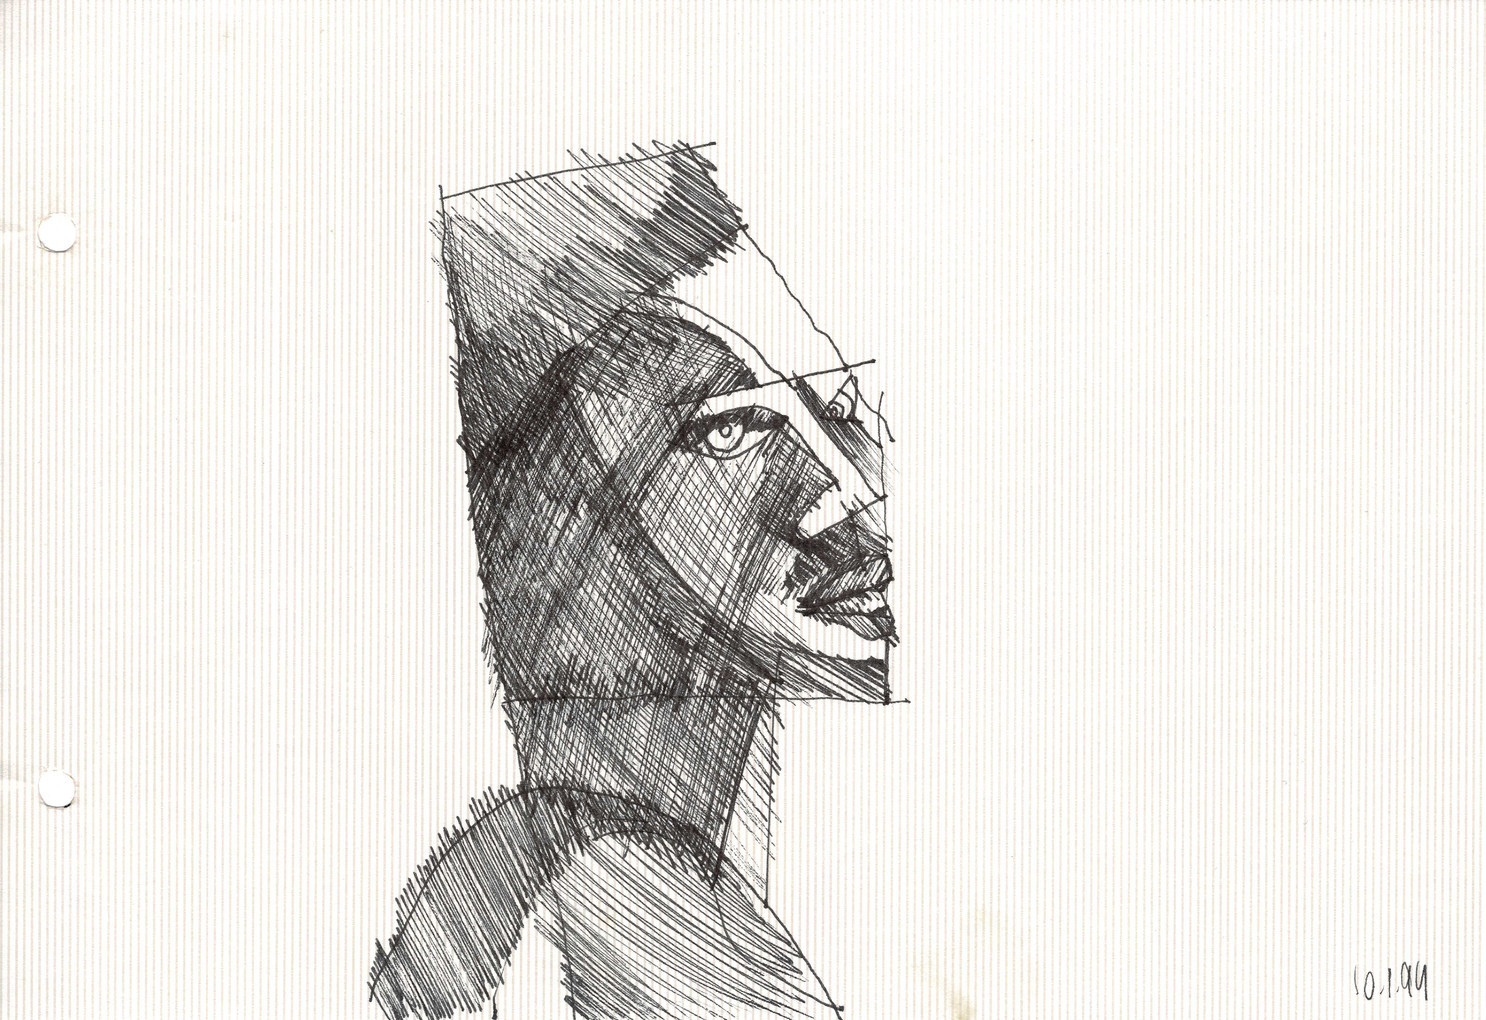 Boston 1, 1994, ink on paper, 30X20.jpg